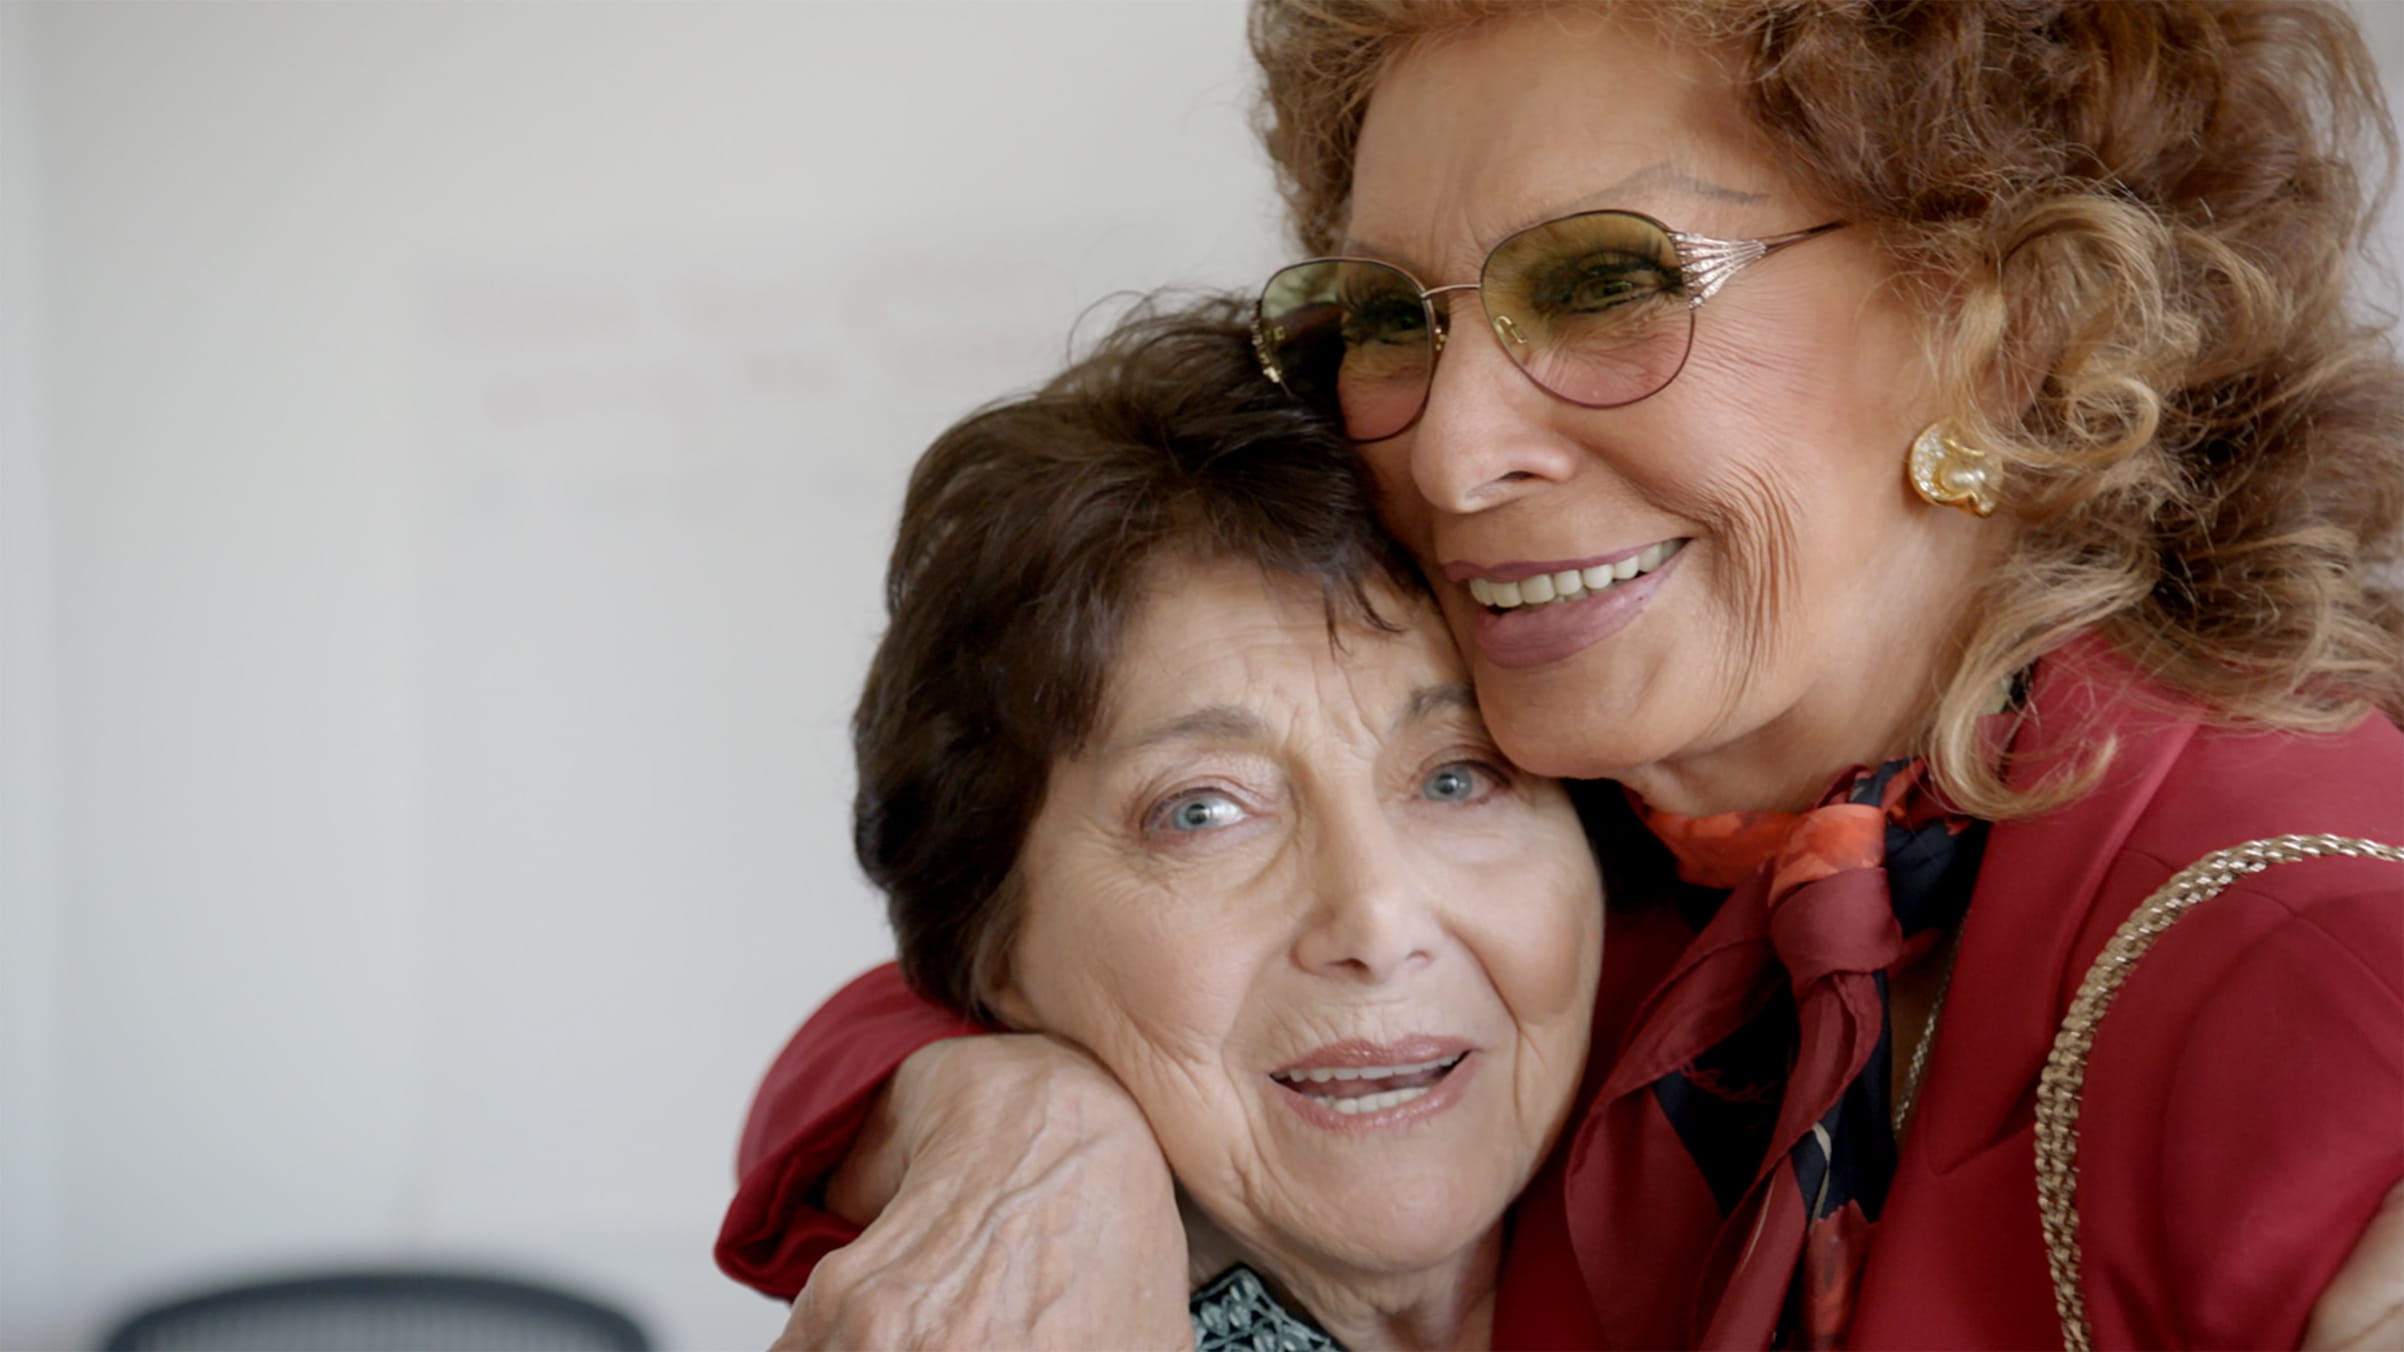 A close-up of Kulik and Loren as they embrace. Kulik looks straight to camera. Loren wears a red blazer, scarf, and sunglasses.